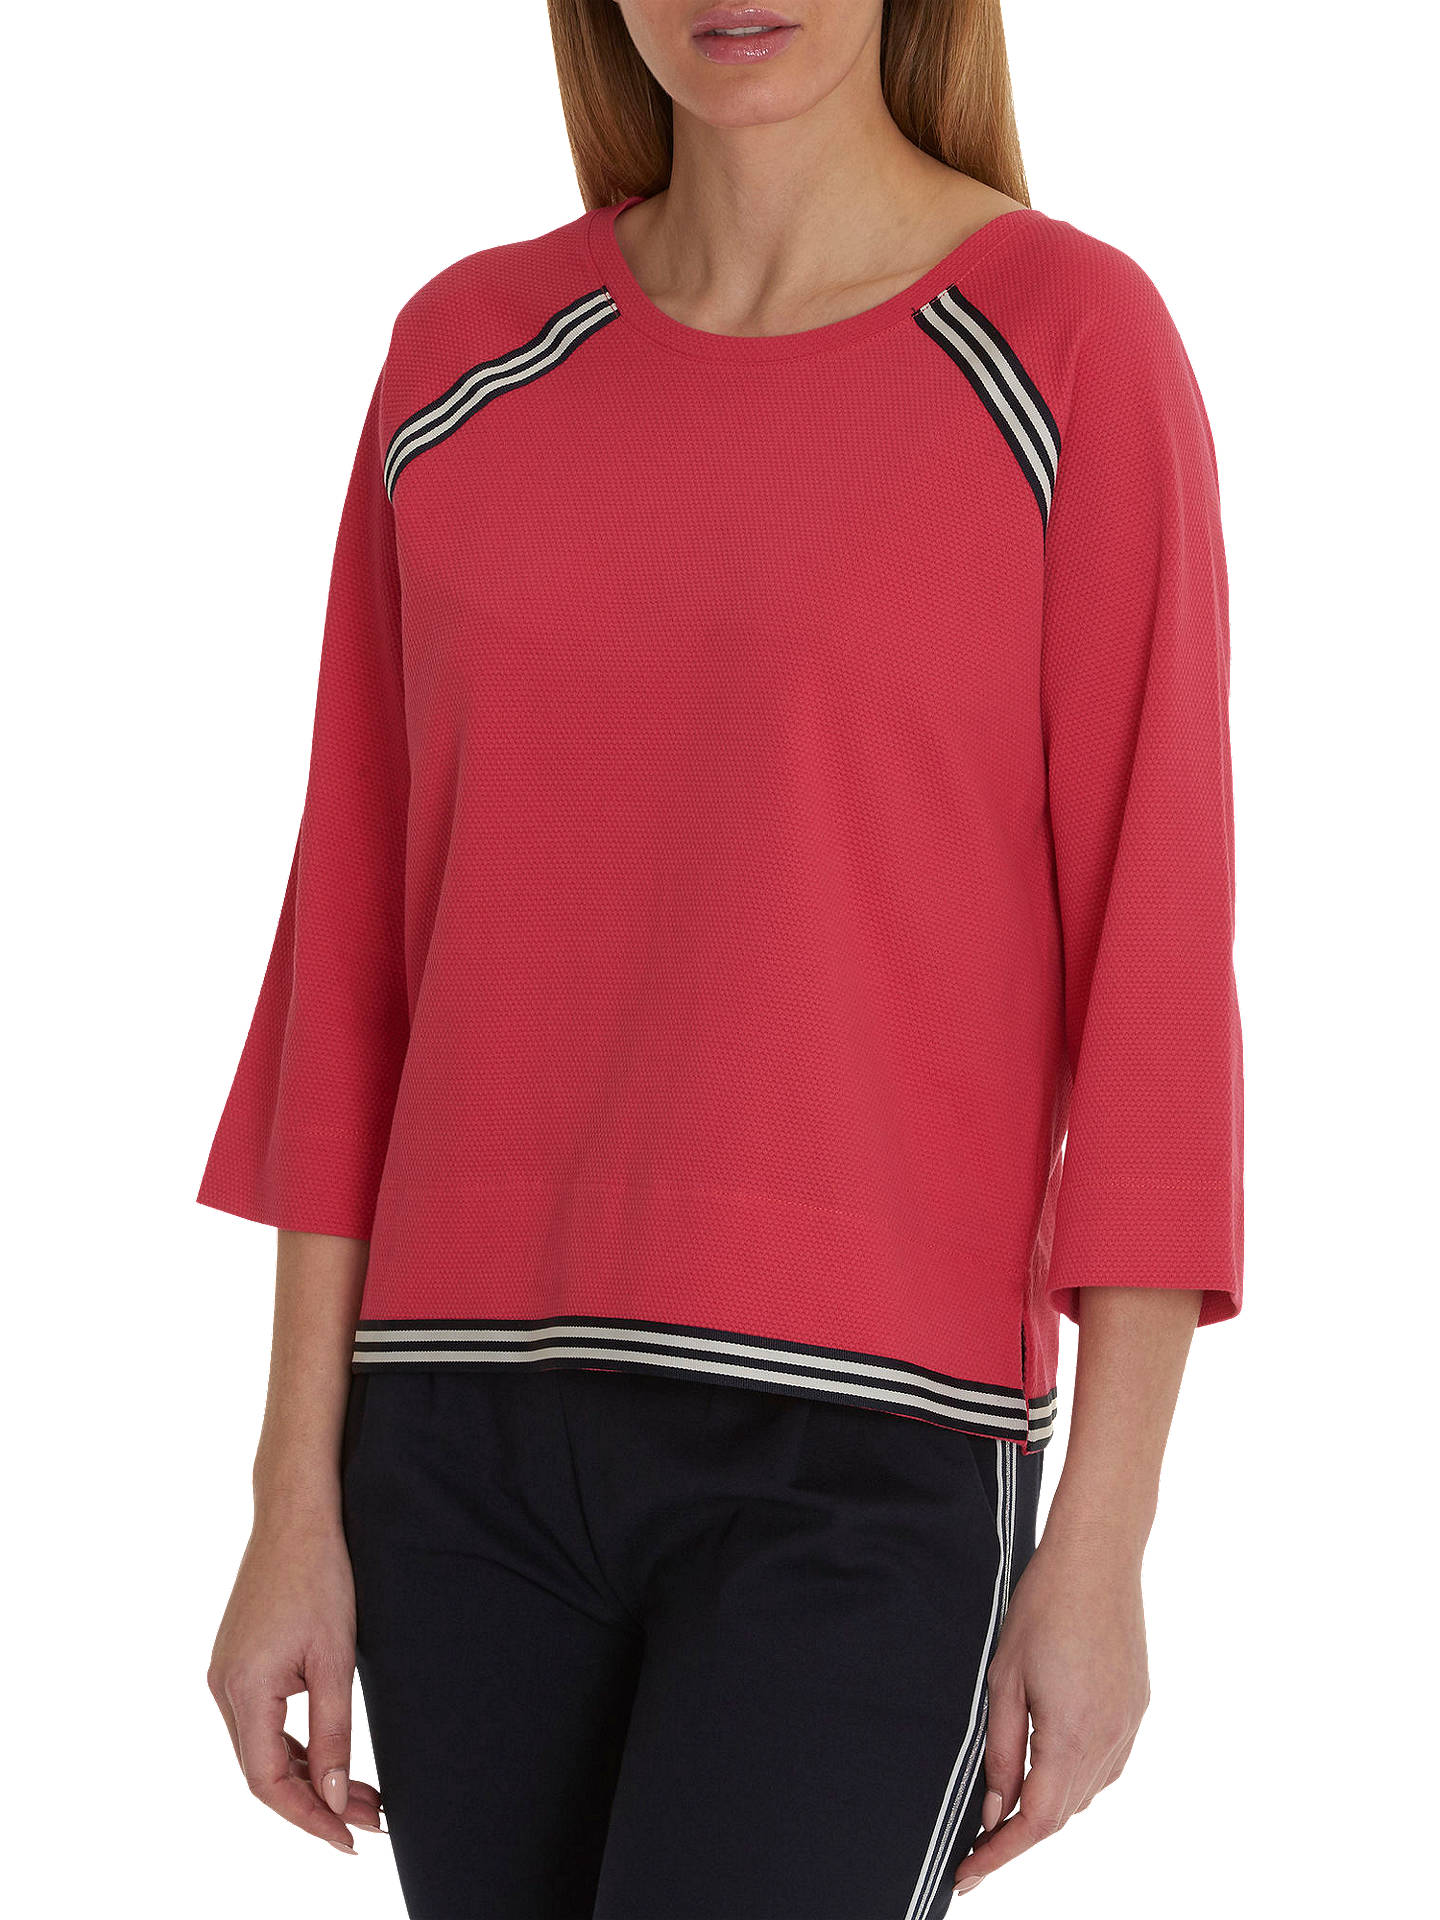 BuyBetty & Co. Sporty Textured Top, Raspberry, 10 Online at johnlewis.com